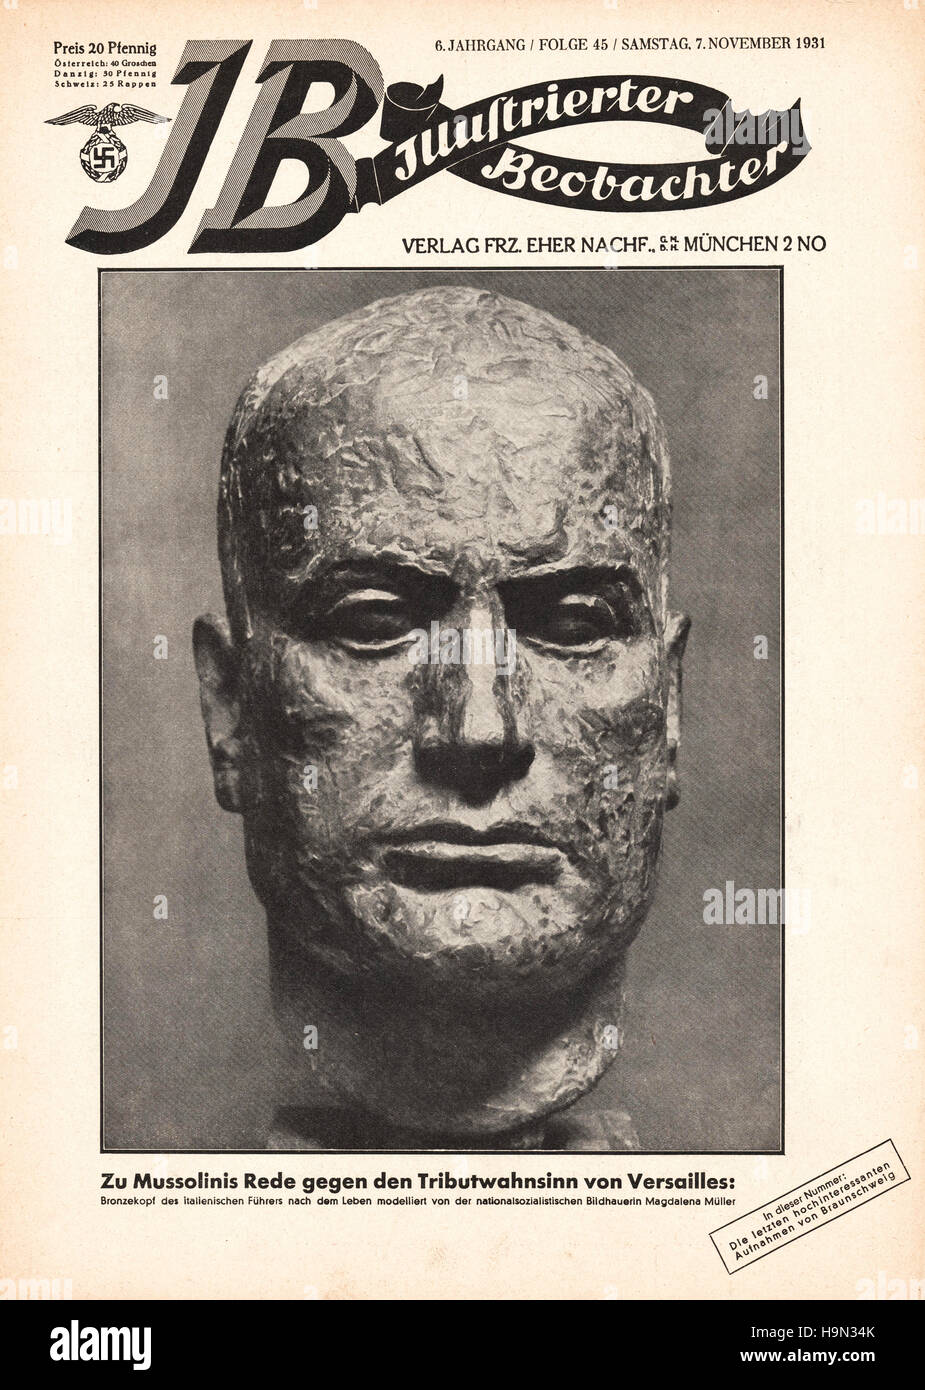 1931 Illustrierte Beobachter front page Benito Mussolini - Stock Image